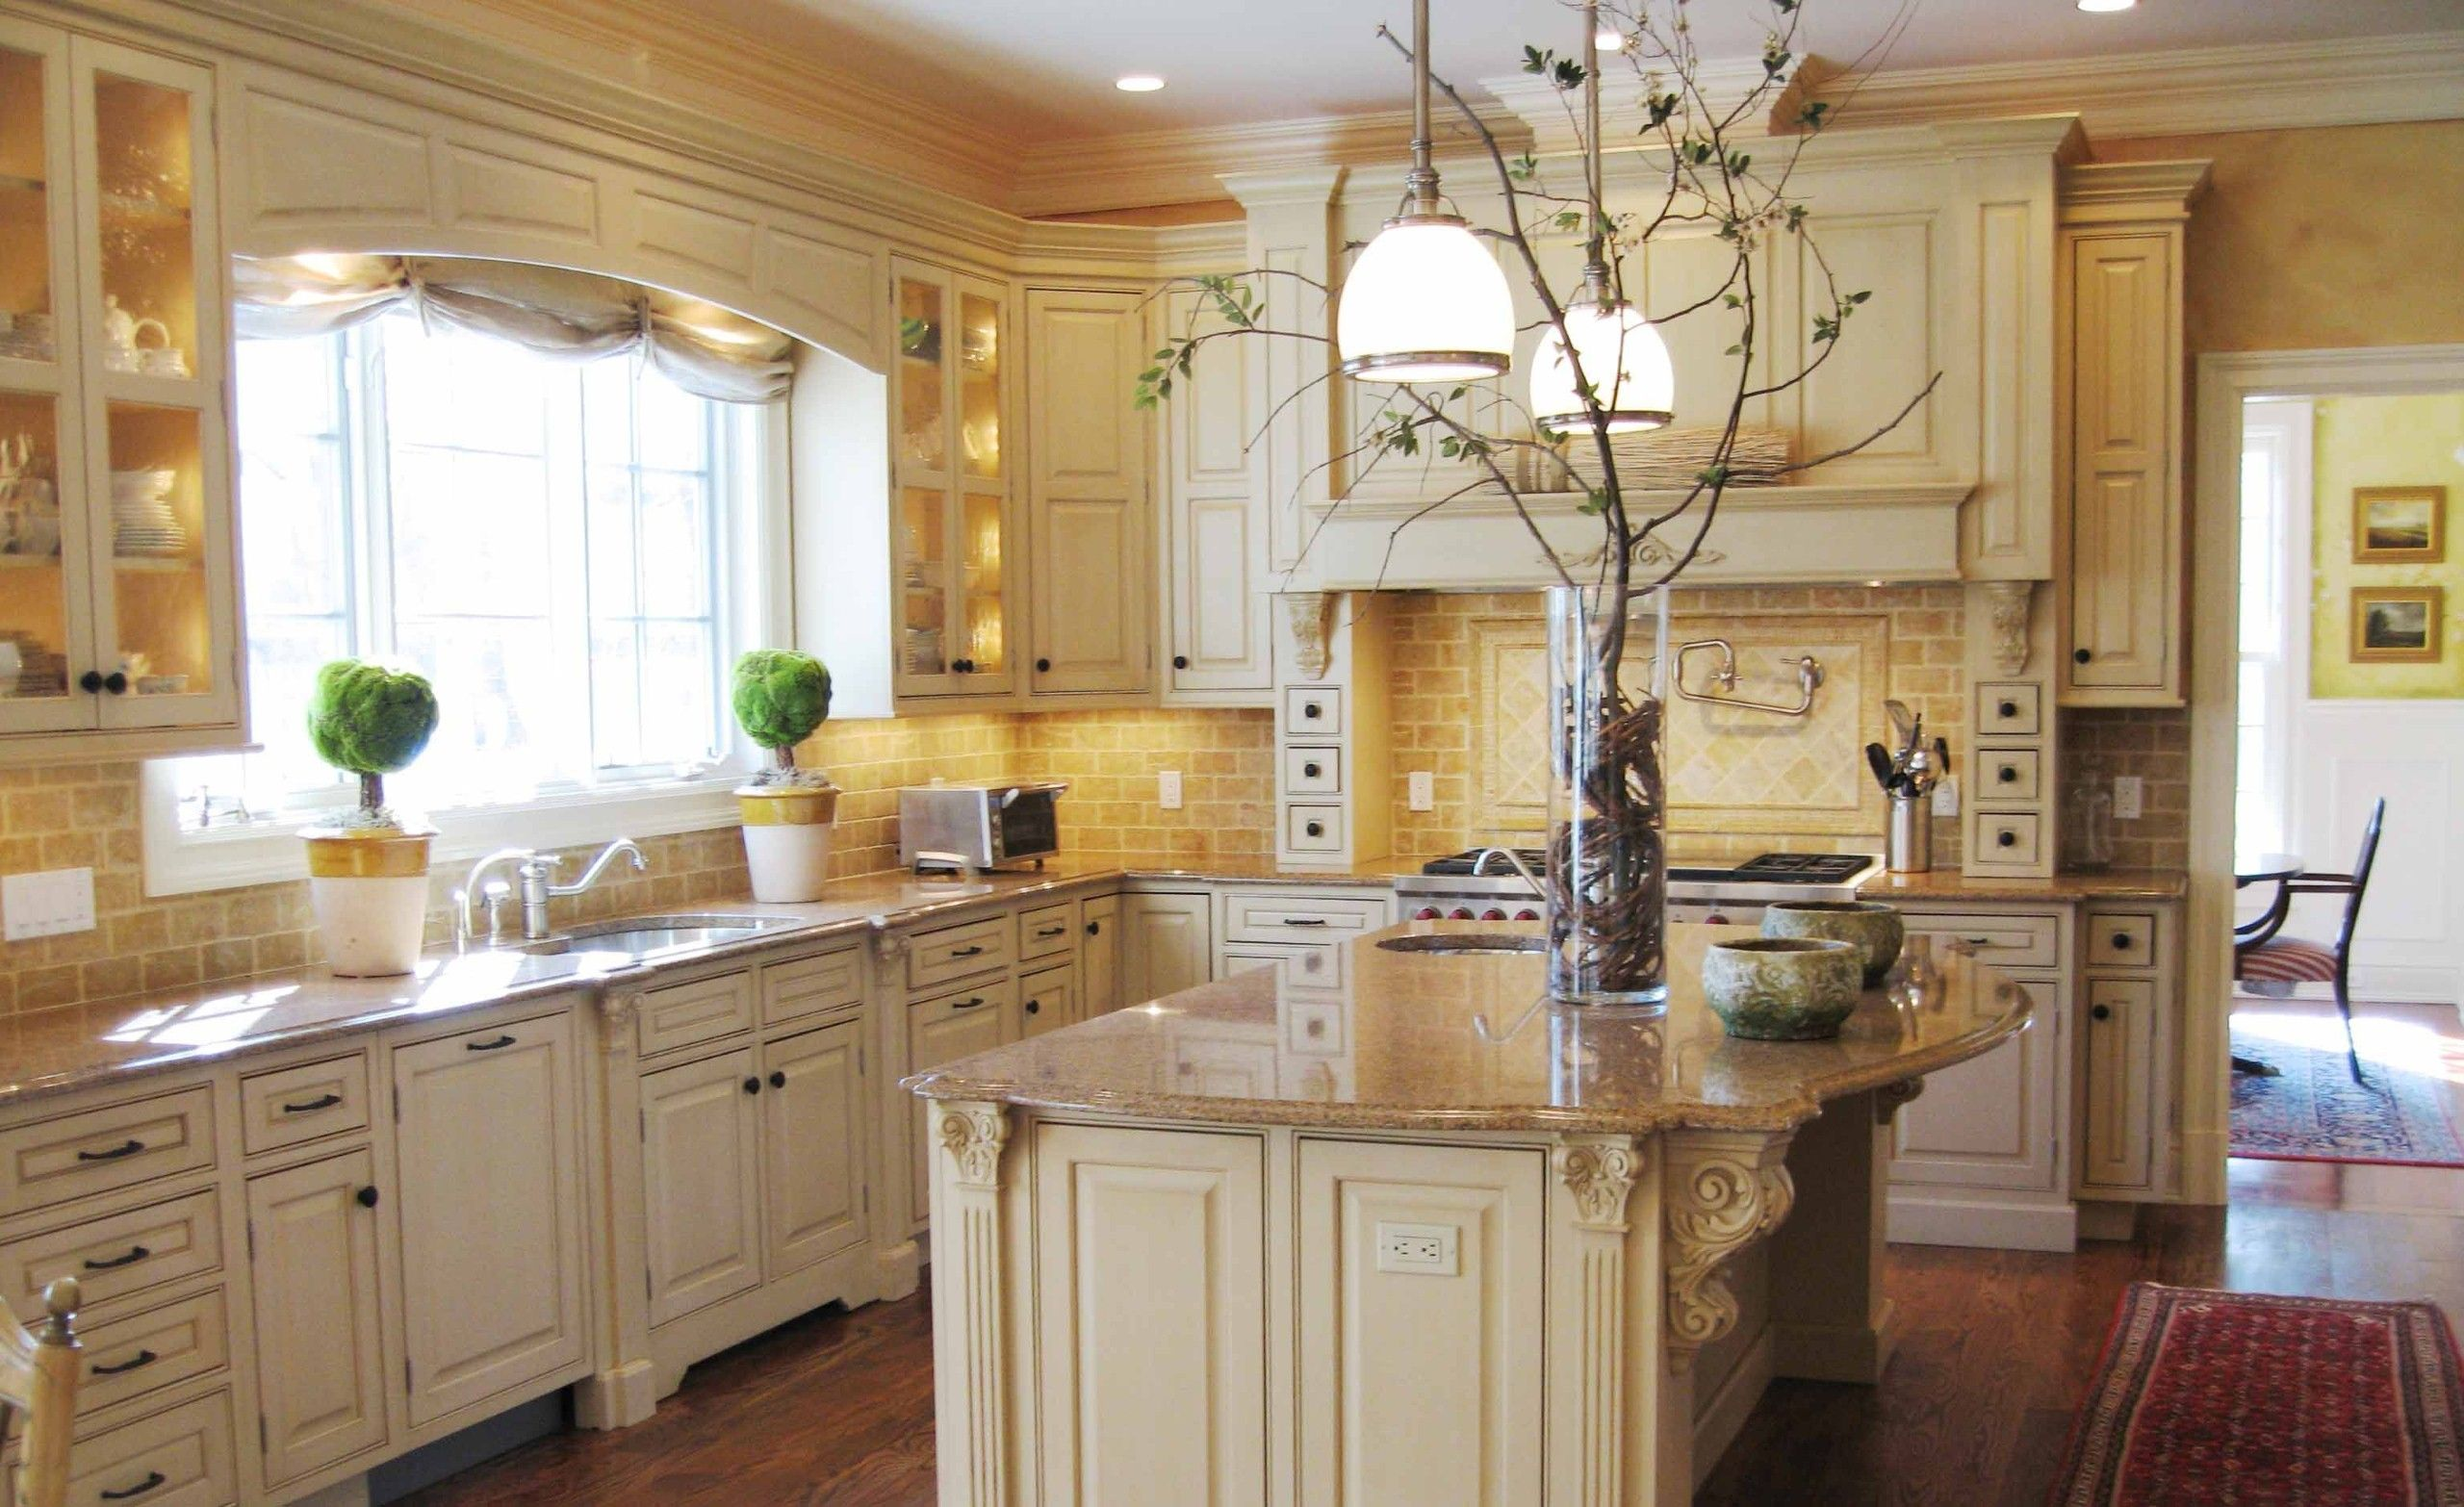 French Kitchen Pictures Terrific French Country Kitchen Decor With Broken White